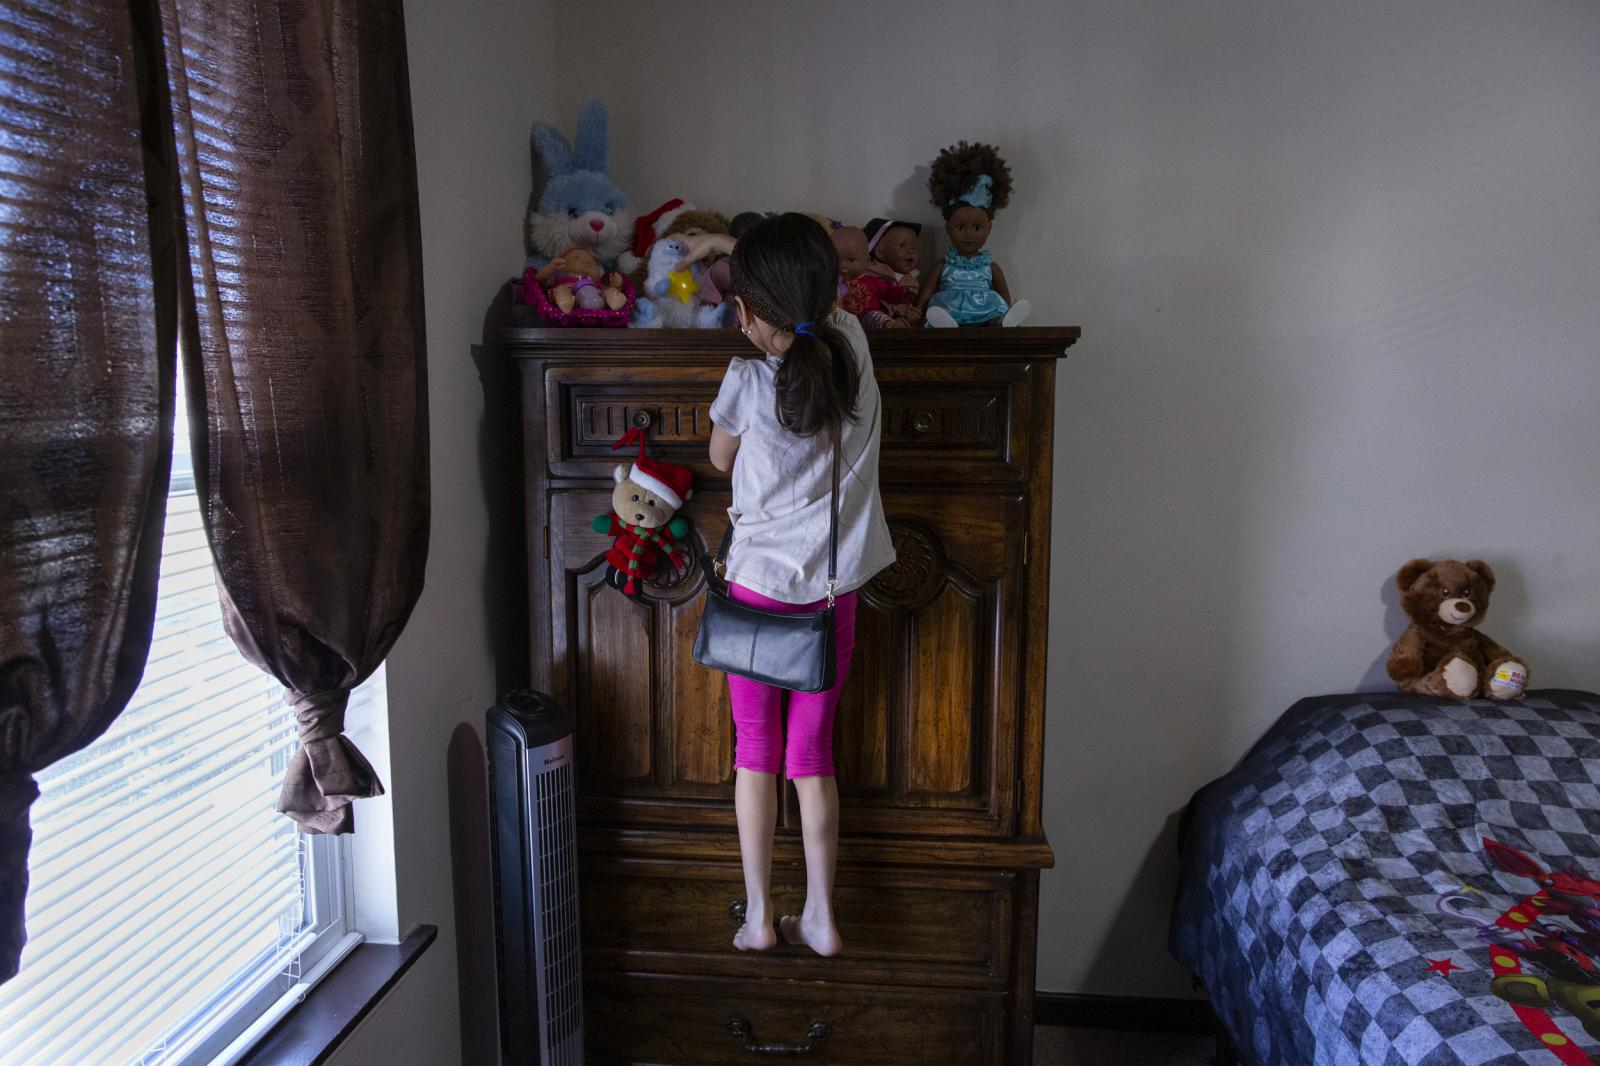 "Intisar Bakour, 8, reaches for her favorite doll in her room in Indianapolis, Indiana on March 26, 2019. Bakour said she felt nervous meeting with her grandparents at the airport for the first time since she was four, and she didn't recognize them at first. ""And then my mom told me that was her mom and dad, and then I knew they are my real grandparents."""